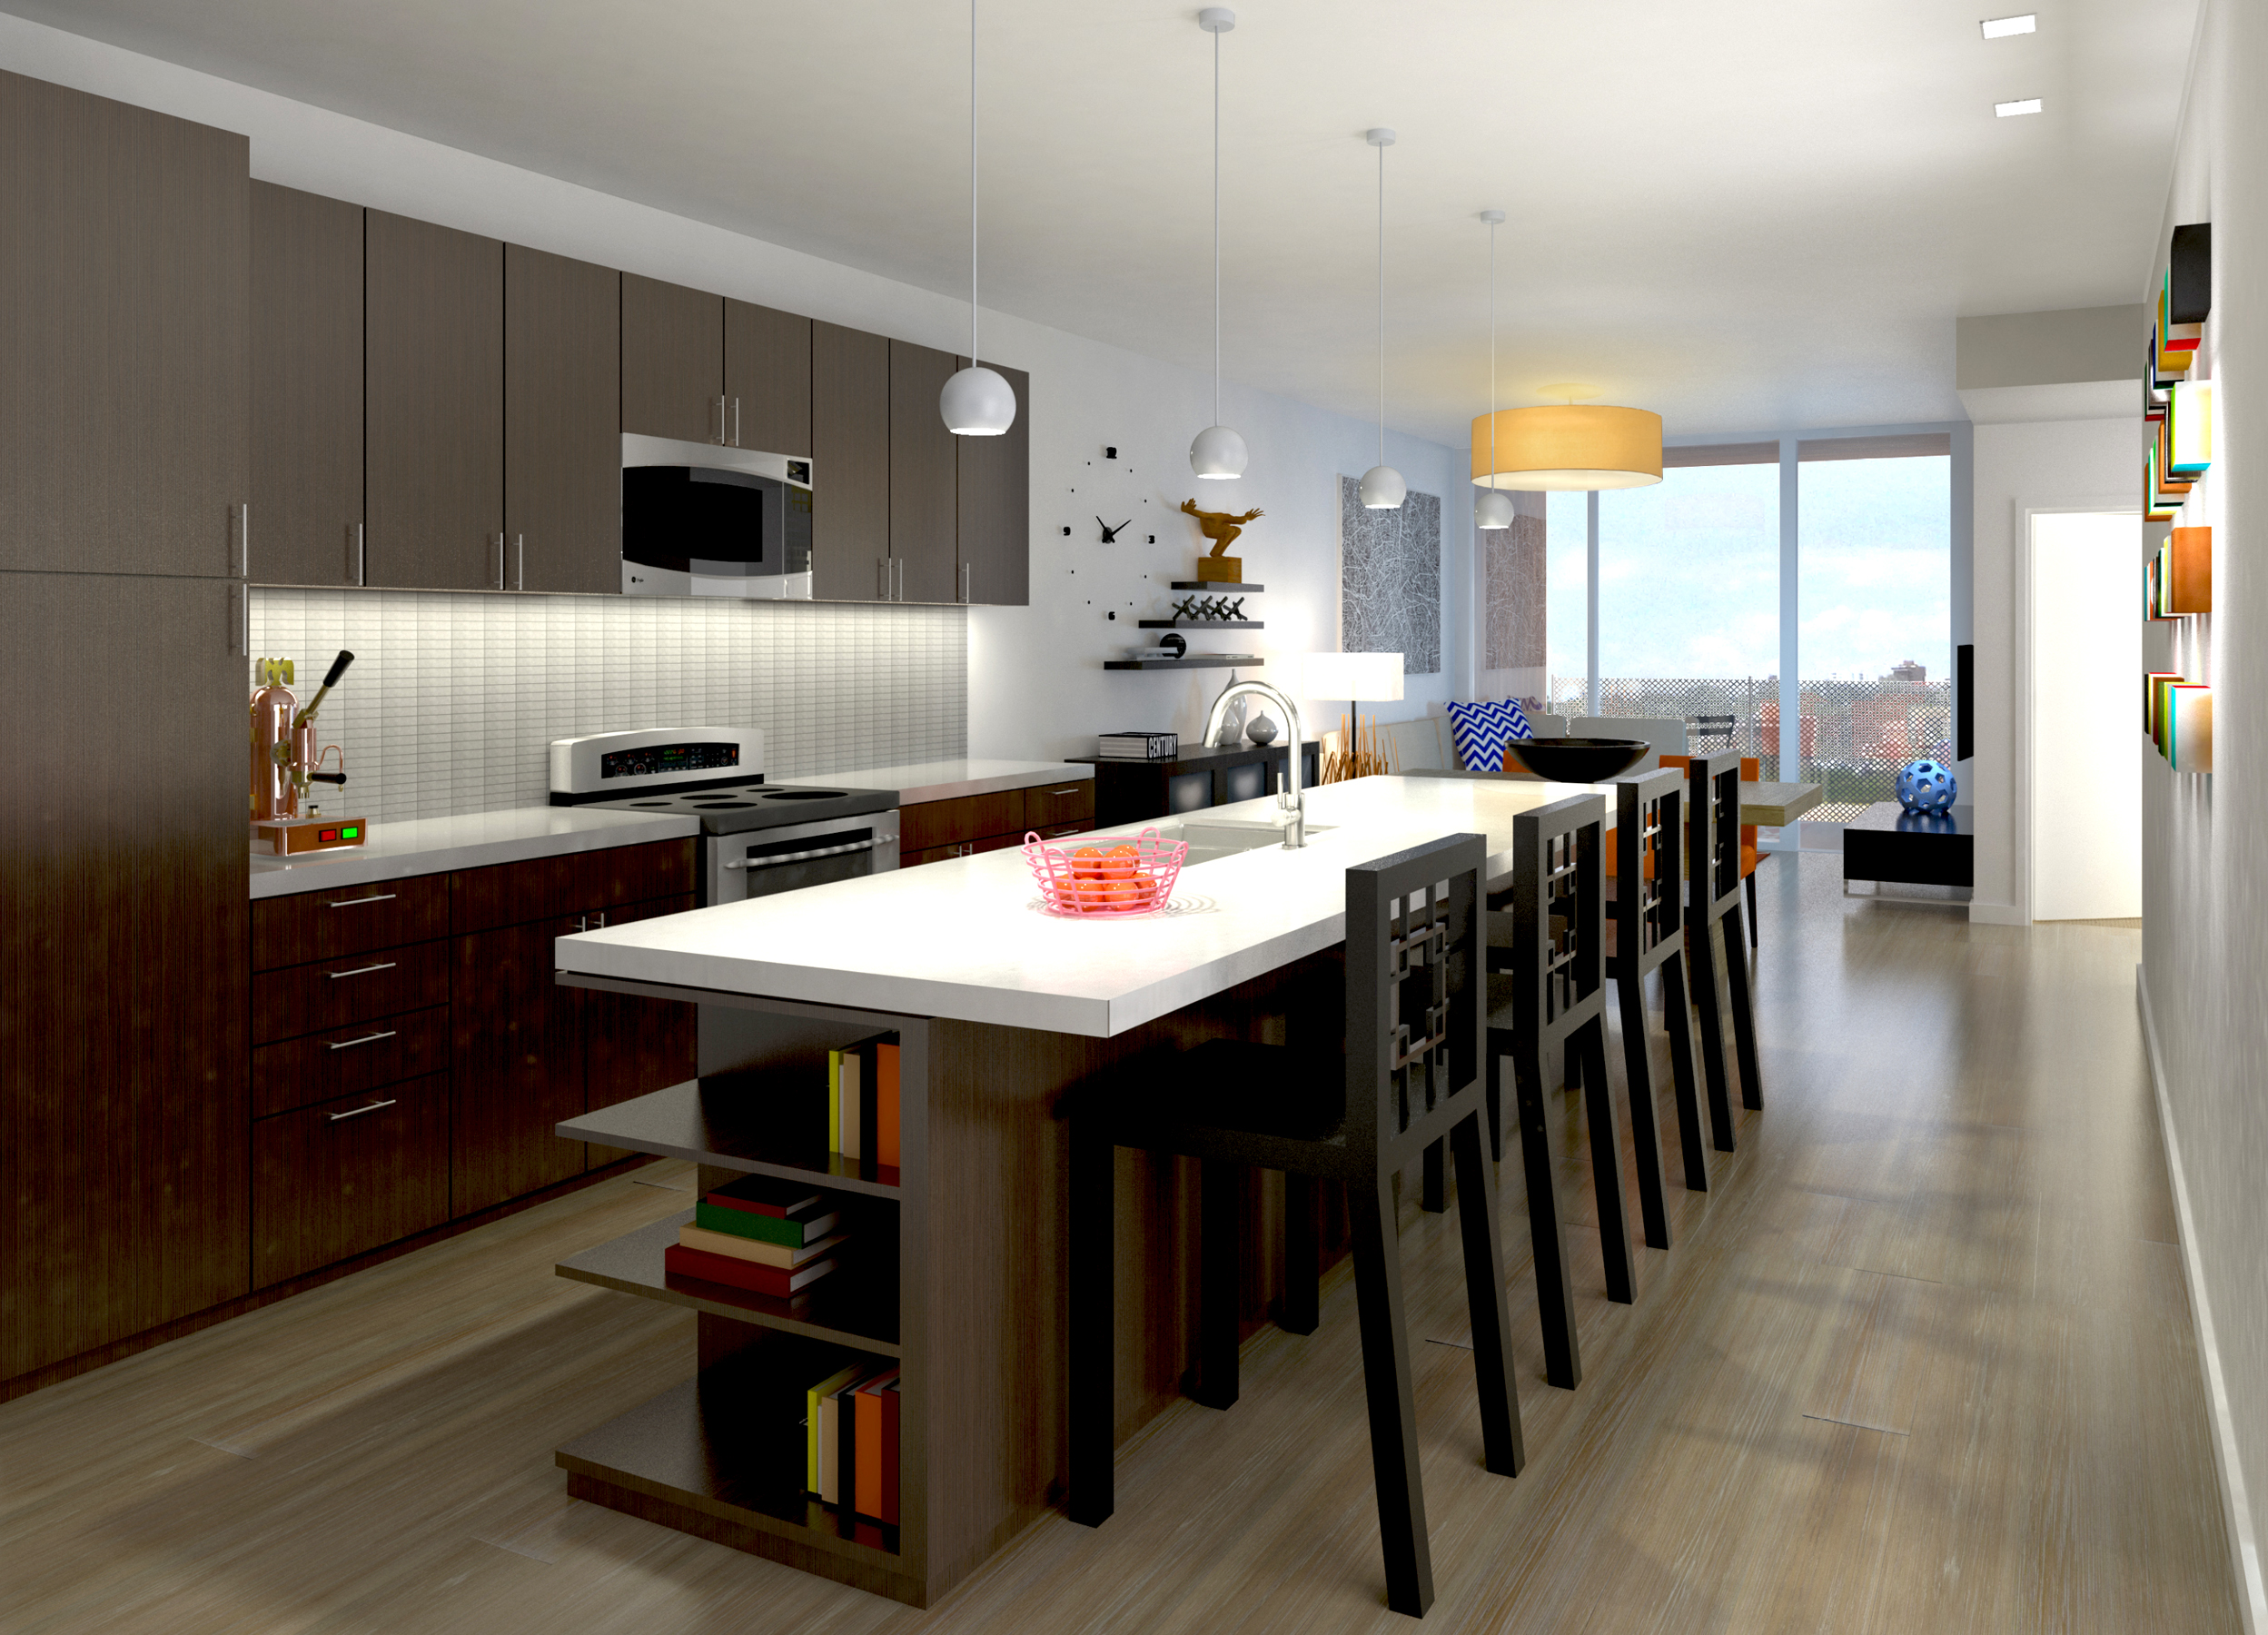 12 Residences at Fillmore Plaza Cherry Creek open studio architecture OSA - interior rendering kitch